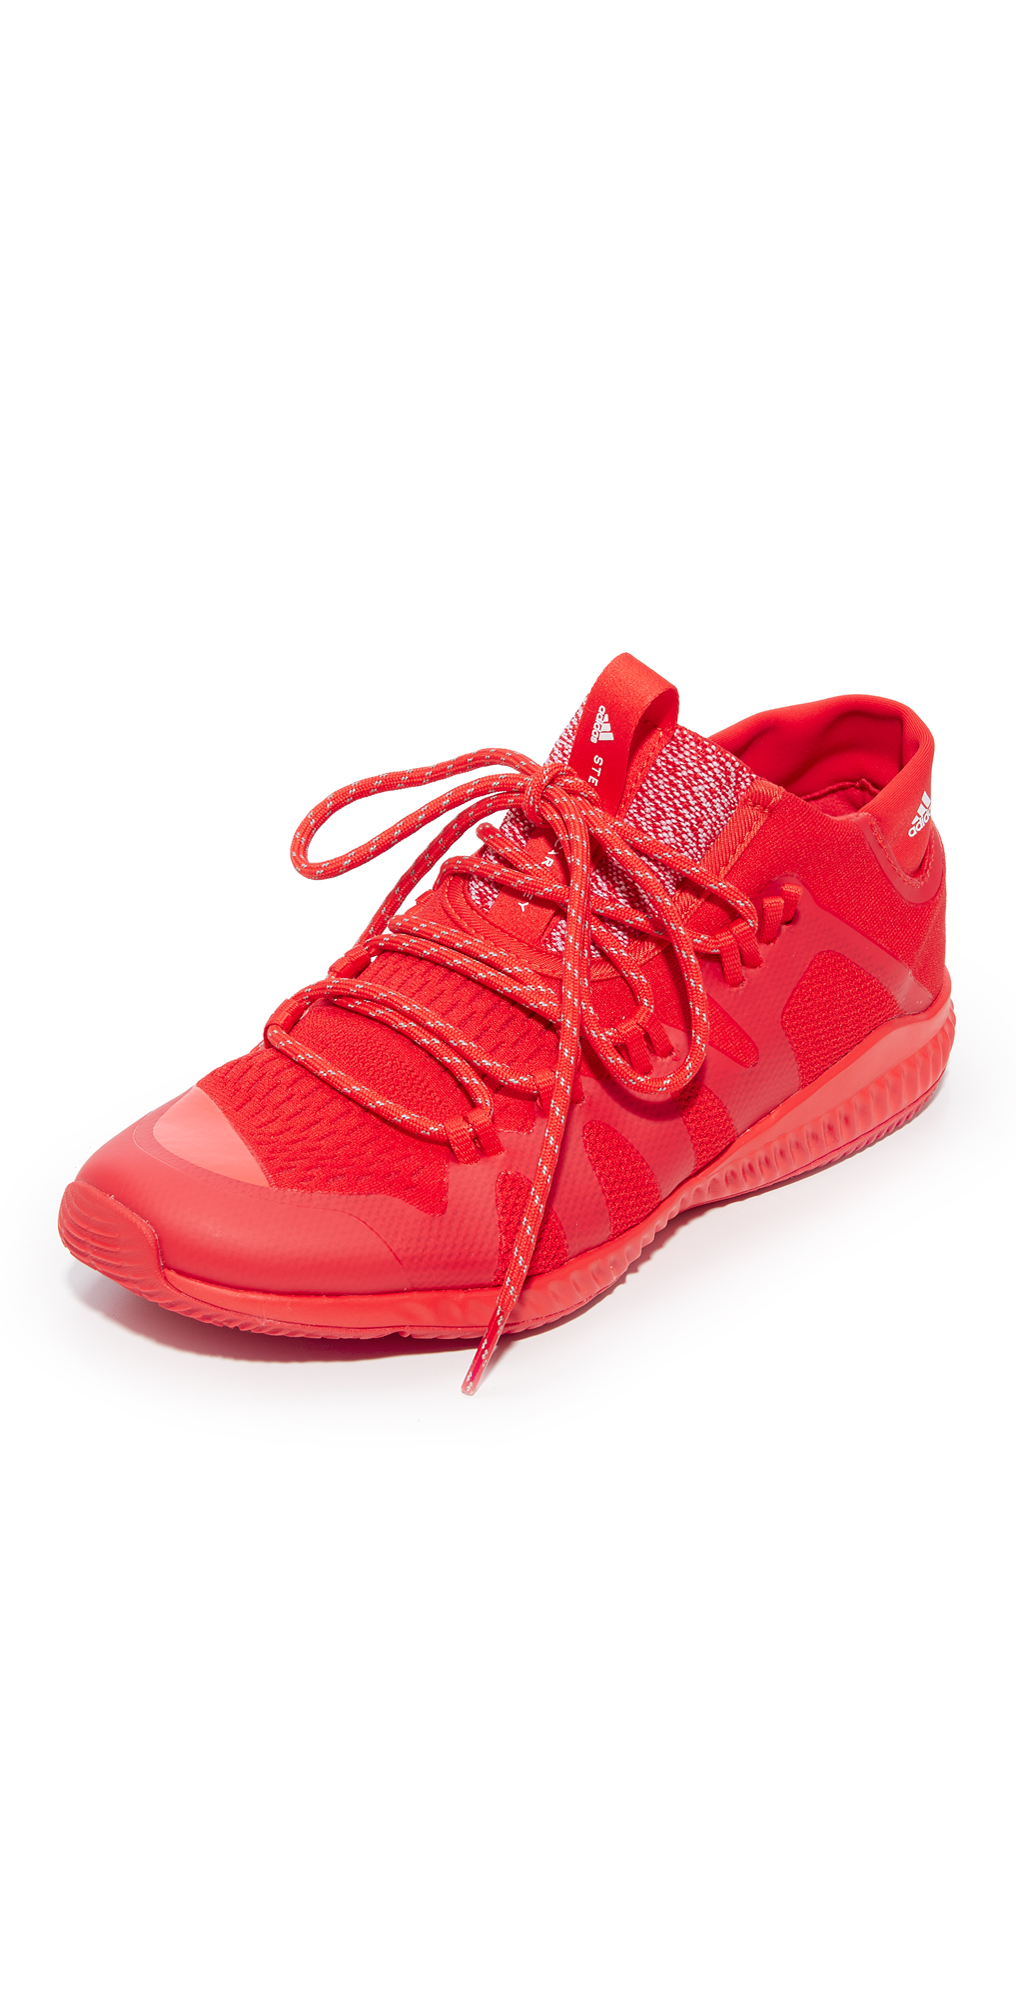 CrazyTrain Bounce Mid Sneakers adidas by Stella McCartney